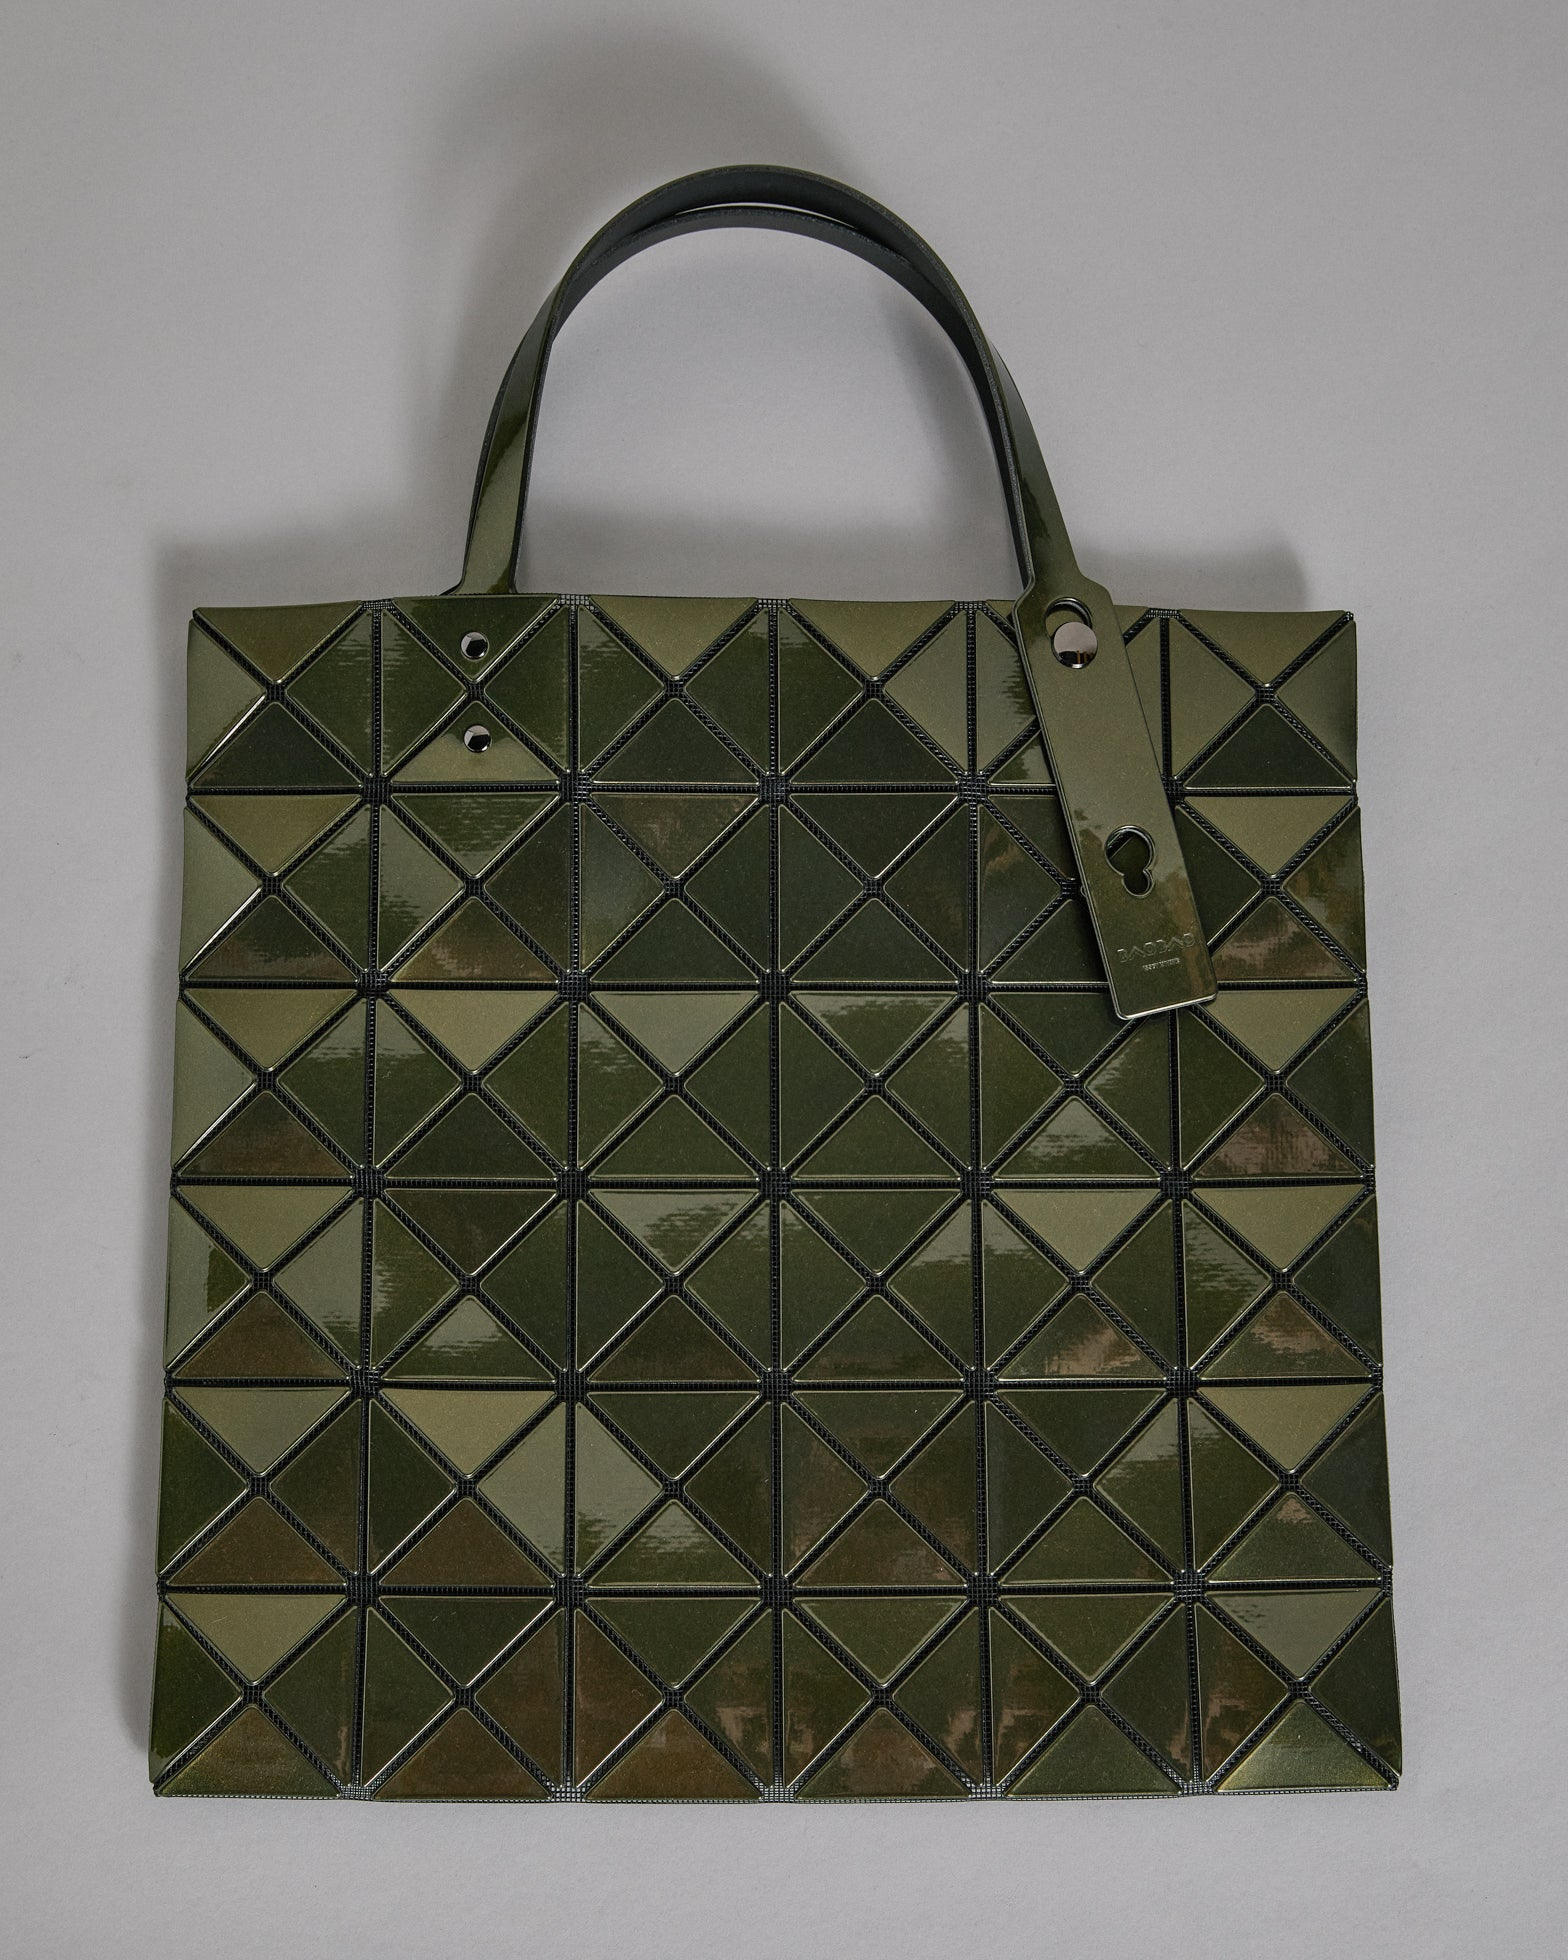 Tote in Metallic Olive